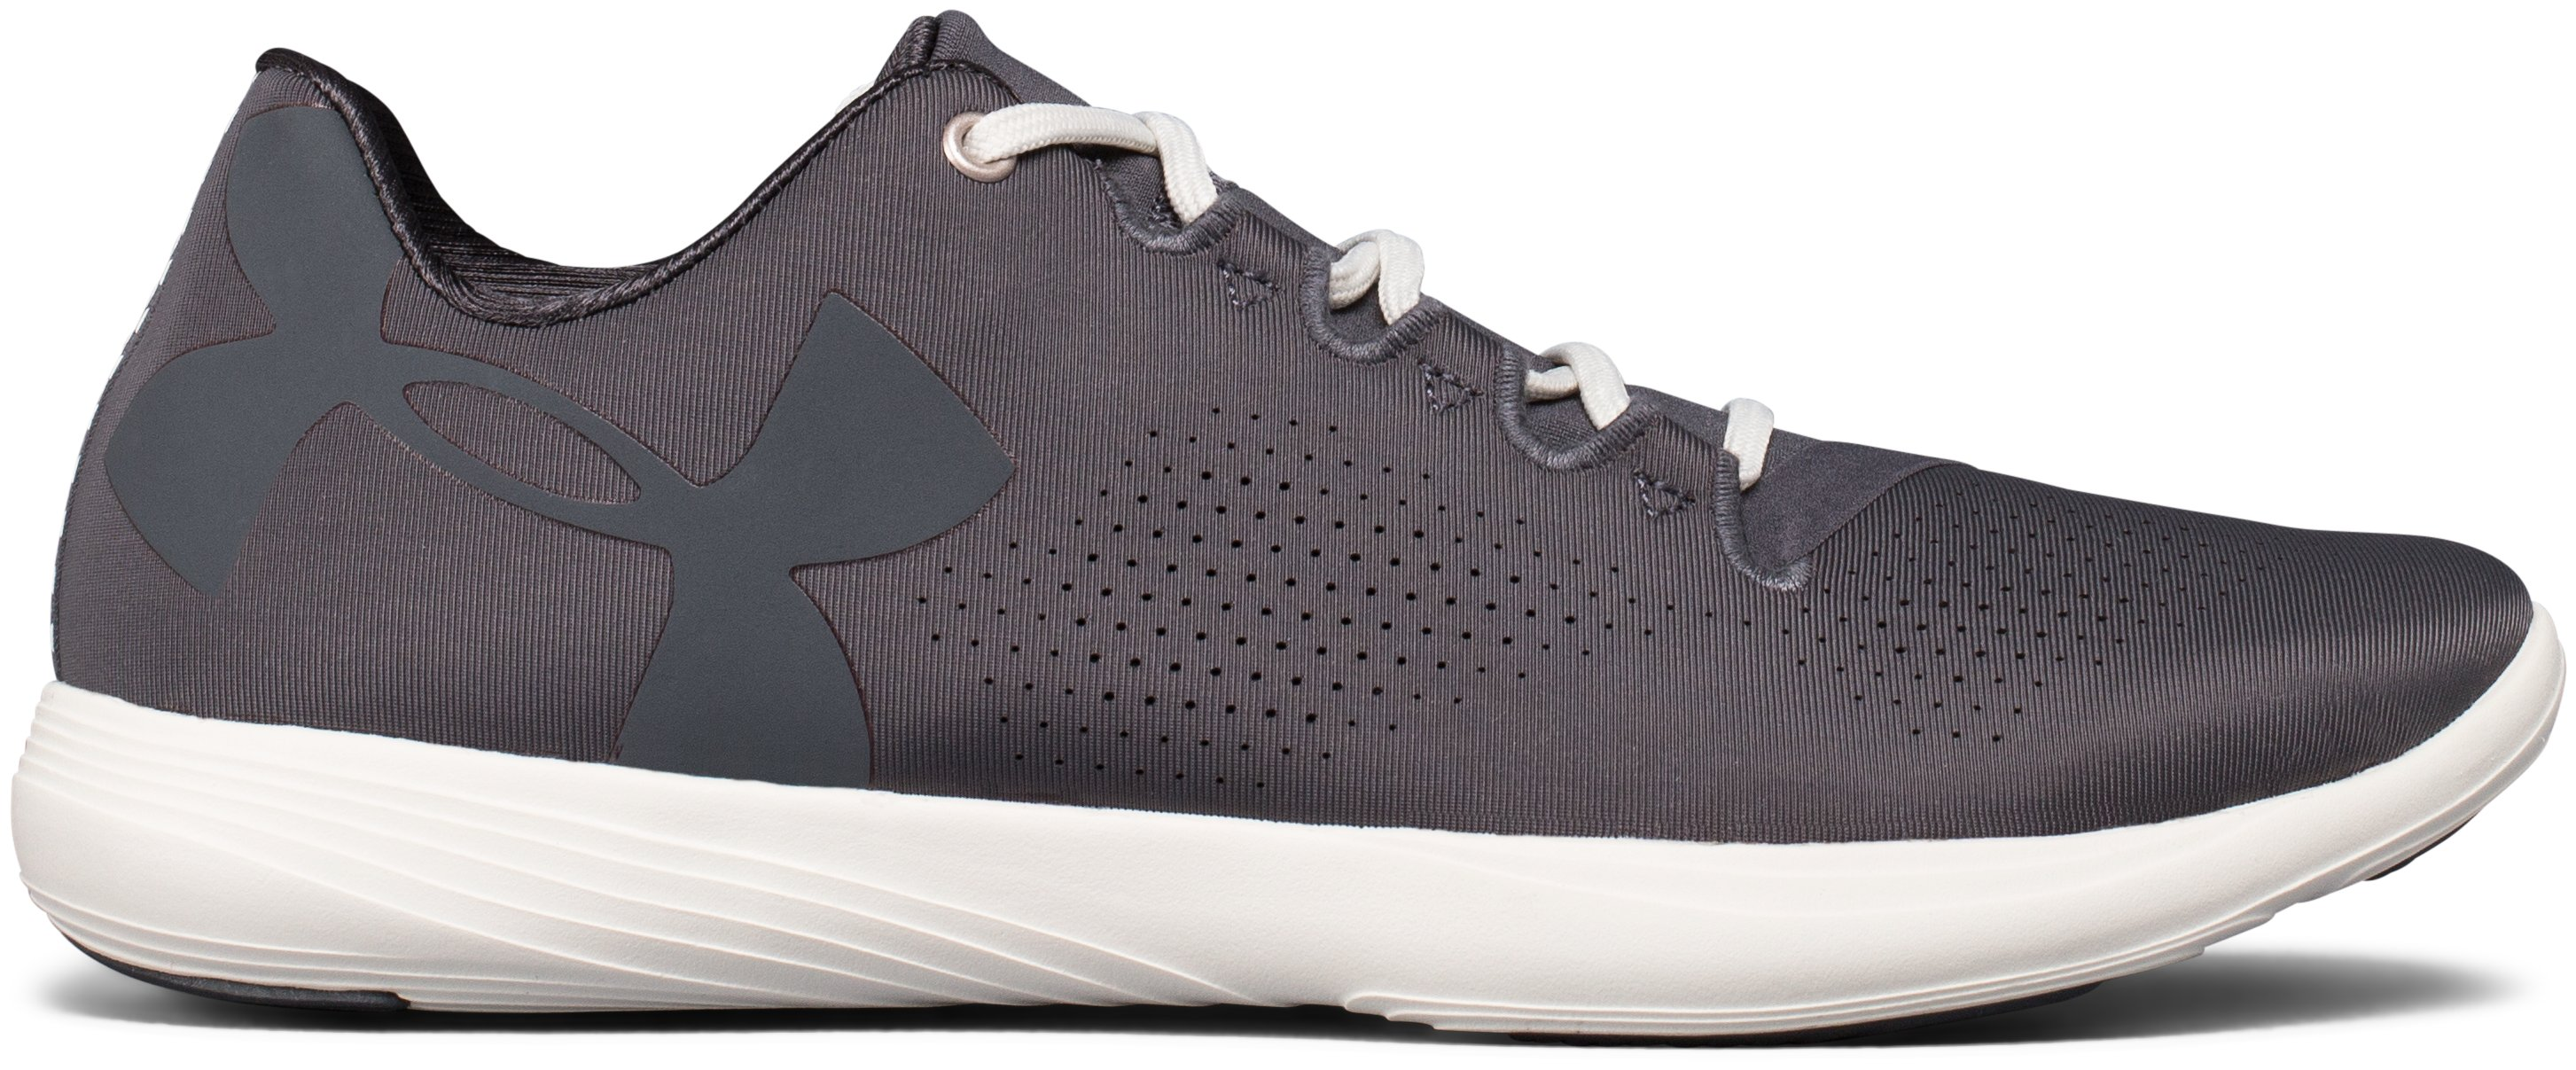 Women's UA Street Precision Low Training Shoes, 360 degree view